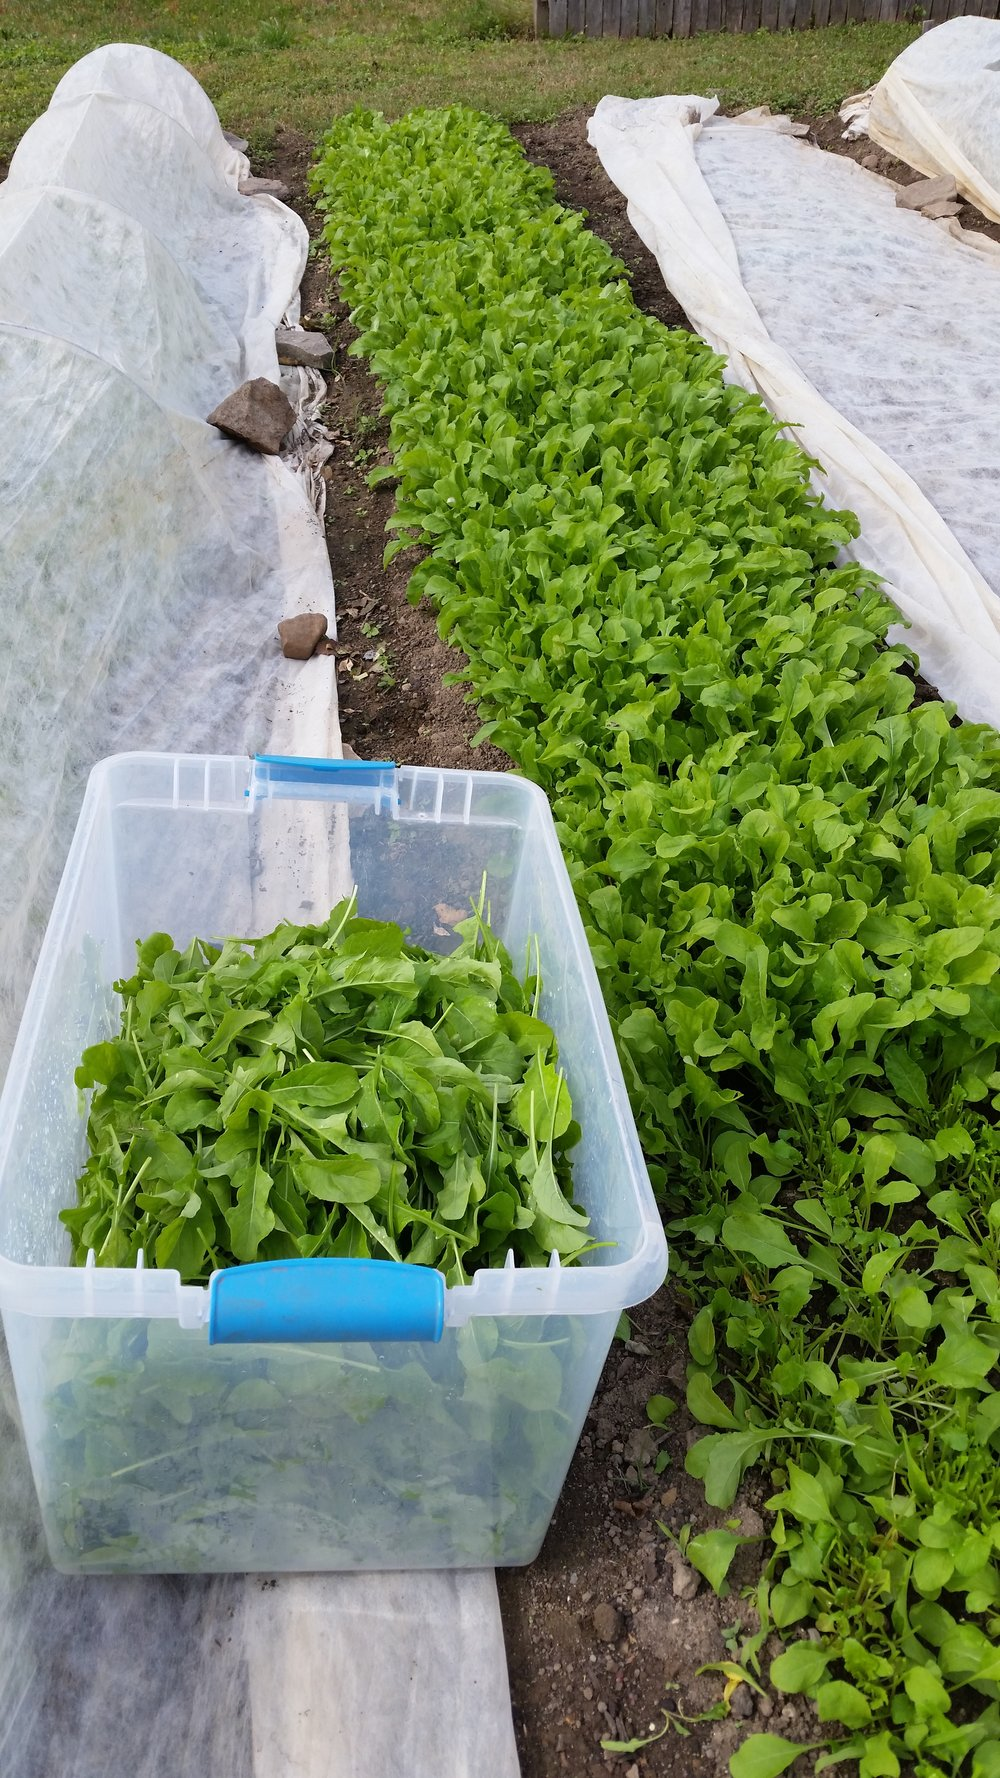 our first harvest at Wise Ave: arugula!